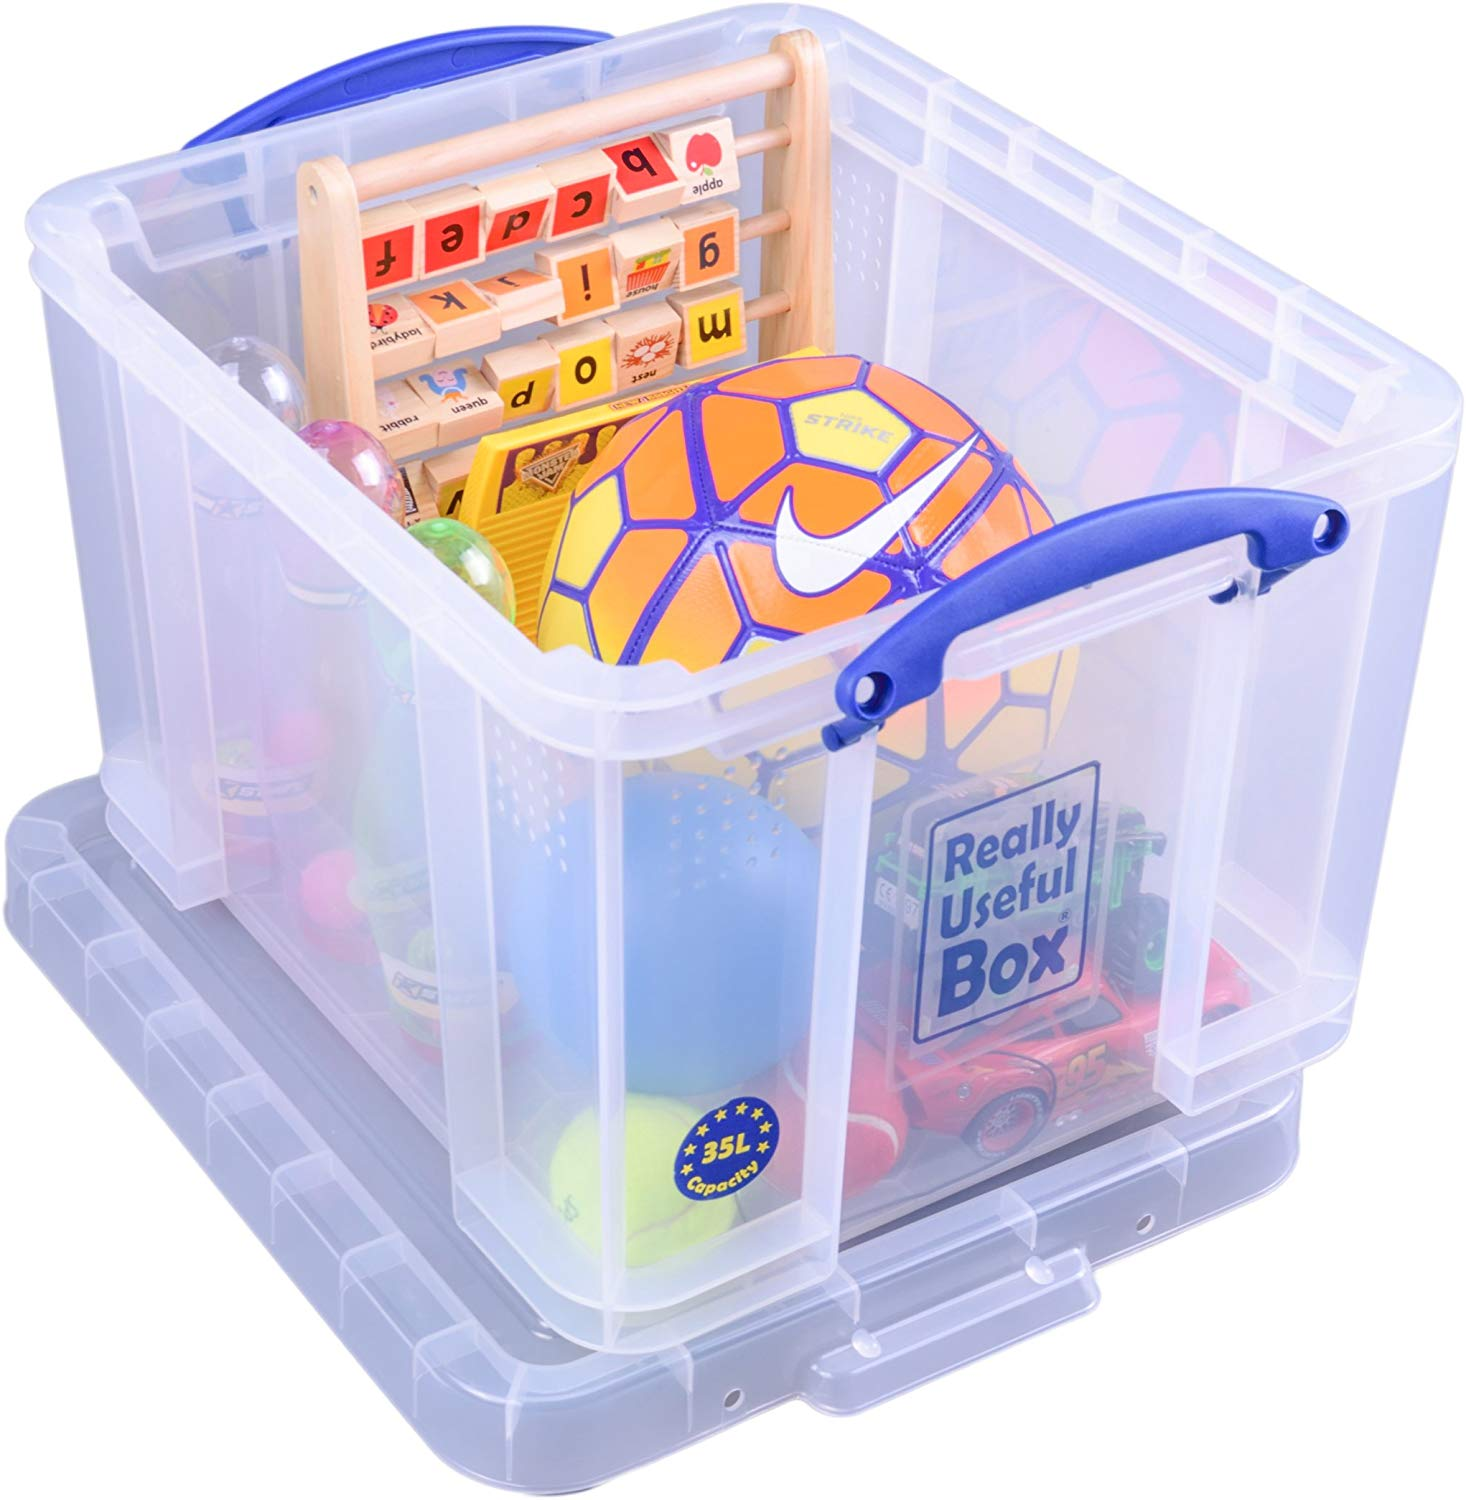 47% off Really Useful Box 35 Litre Clear